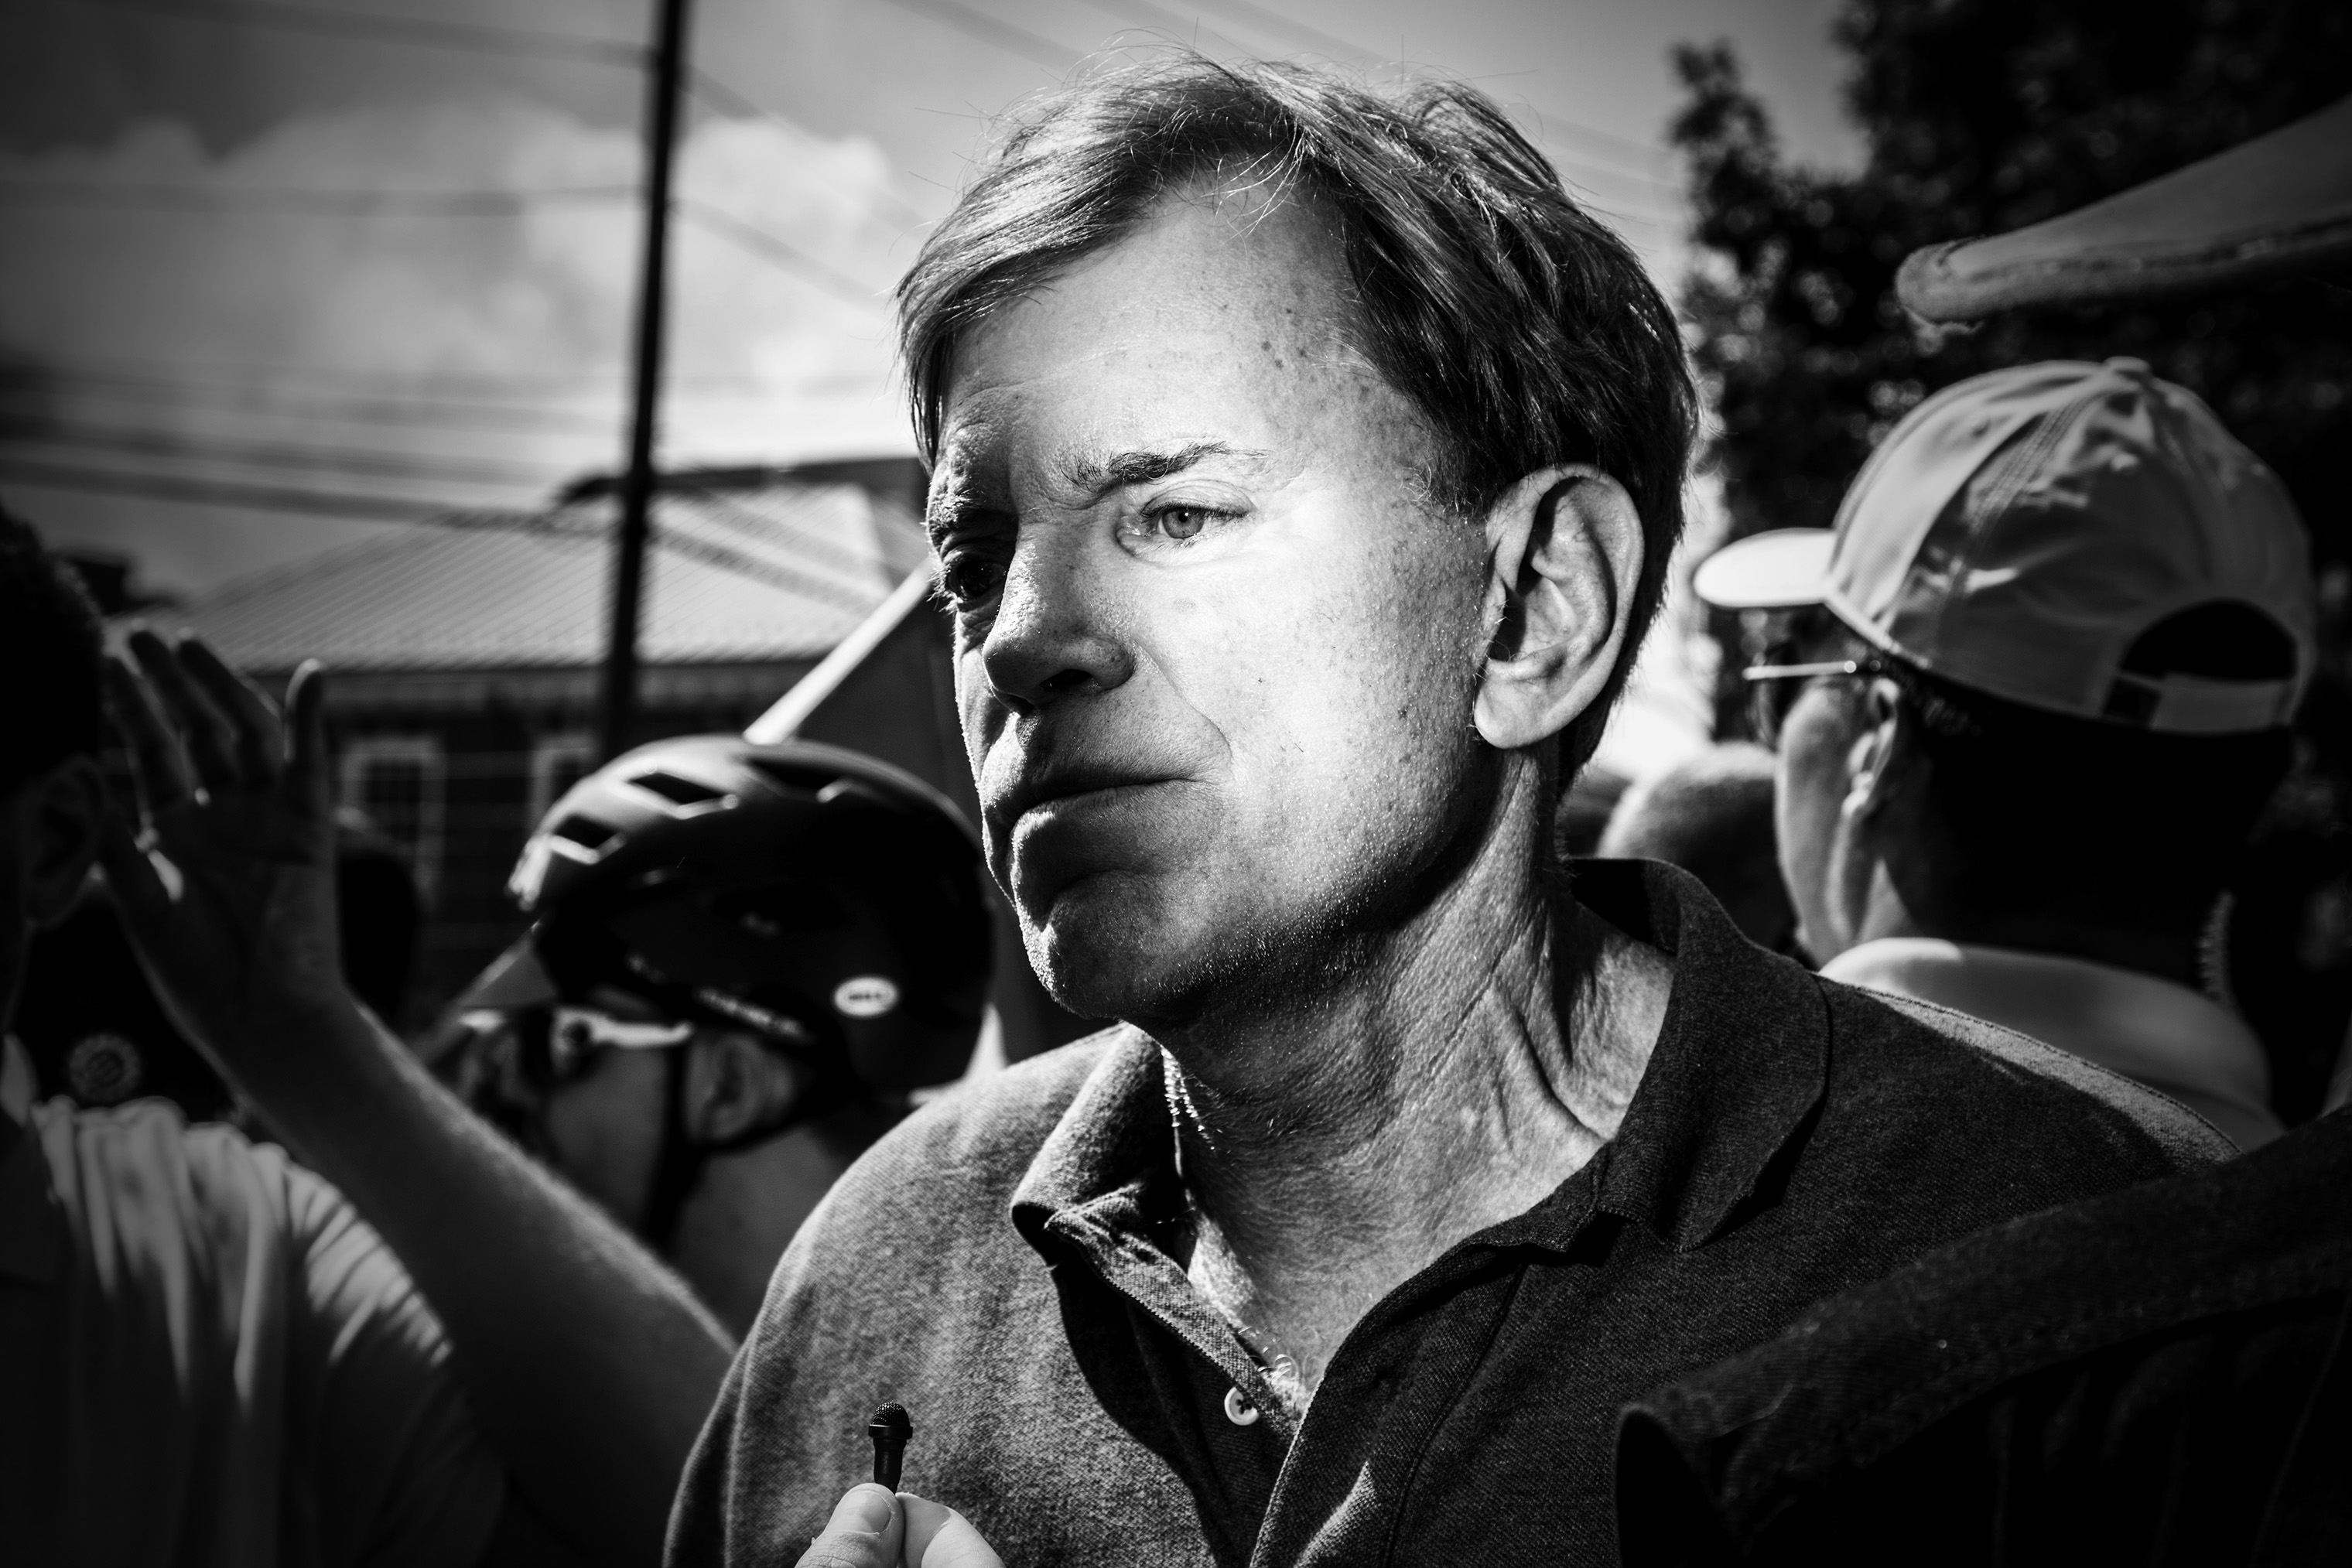 White nationalist and former KKK grand wizard, David Duke at the Unite The Right rally in Charlottesville, Va., on Aug. 12, 2017.